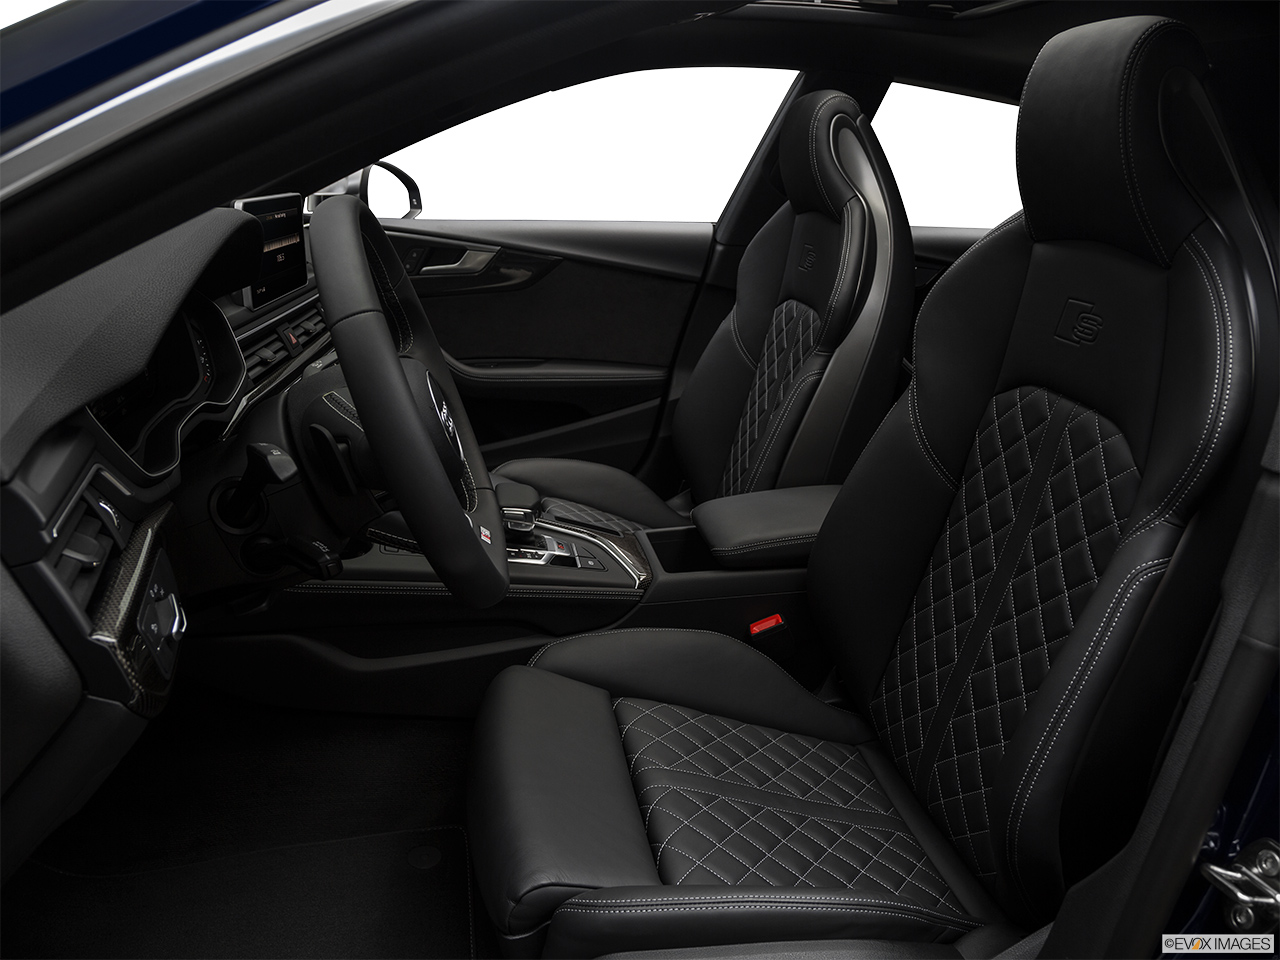 2019 Audi S5 Sportback Premium Plus 3.0 TFSI Front seats from Drivers Side.